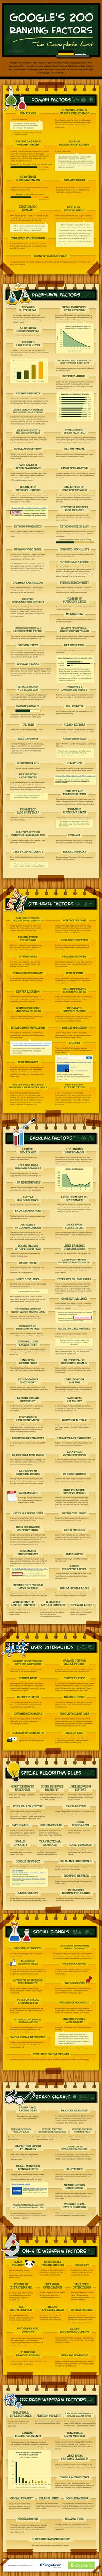 The Complete List of Google Ranking Factors [Infographic]